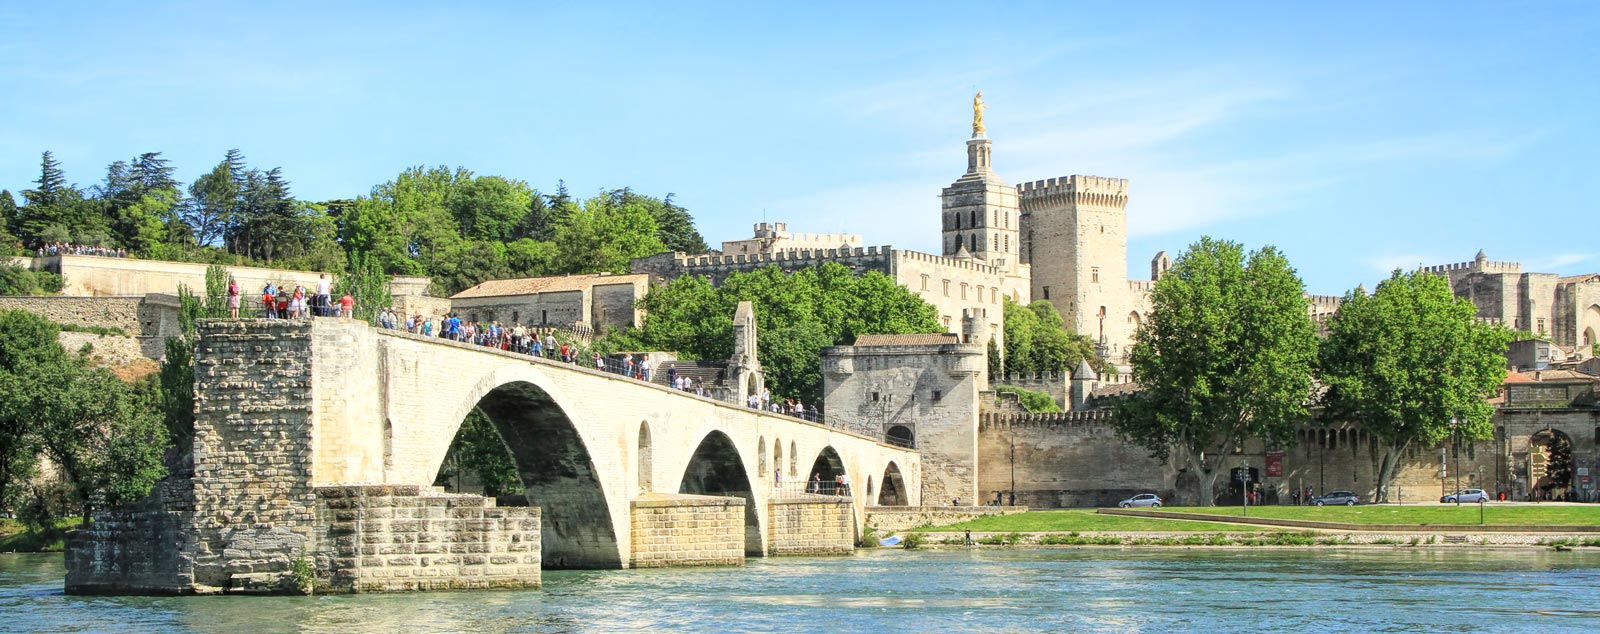 Avignon's famed bridge sticks out half way into the river. The papal place and city walls are towering overhead in the background